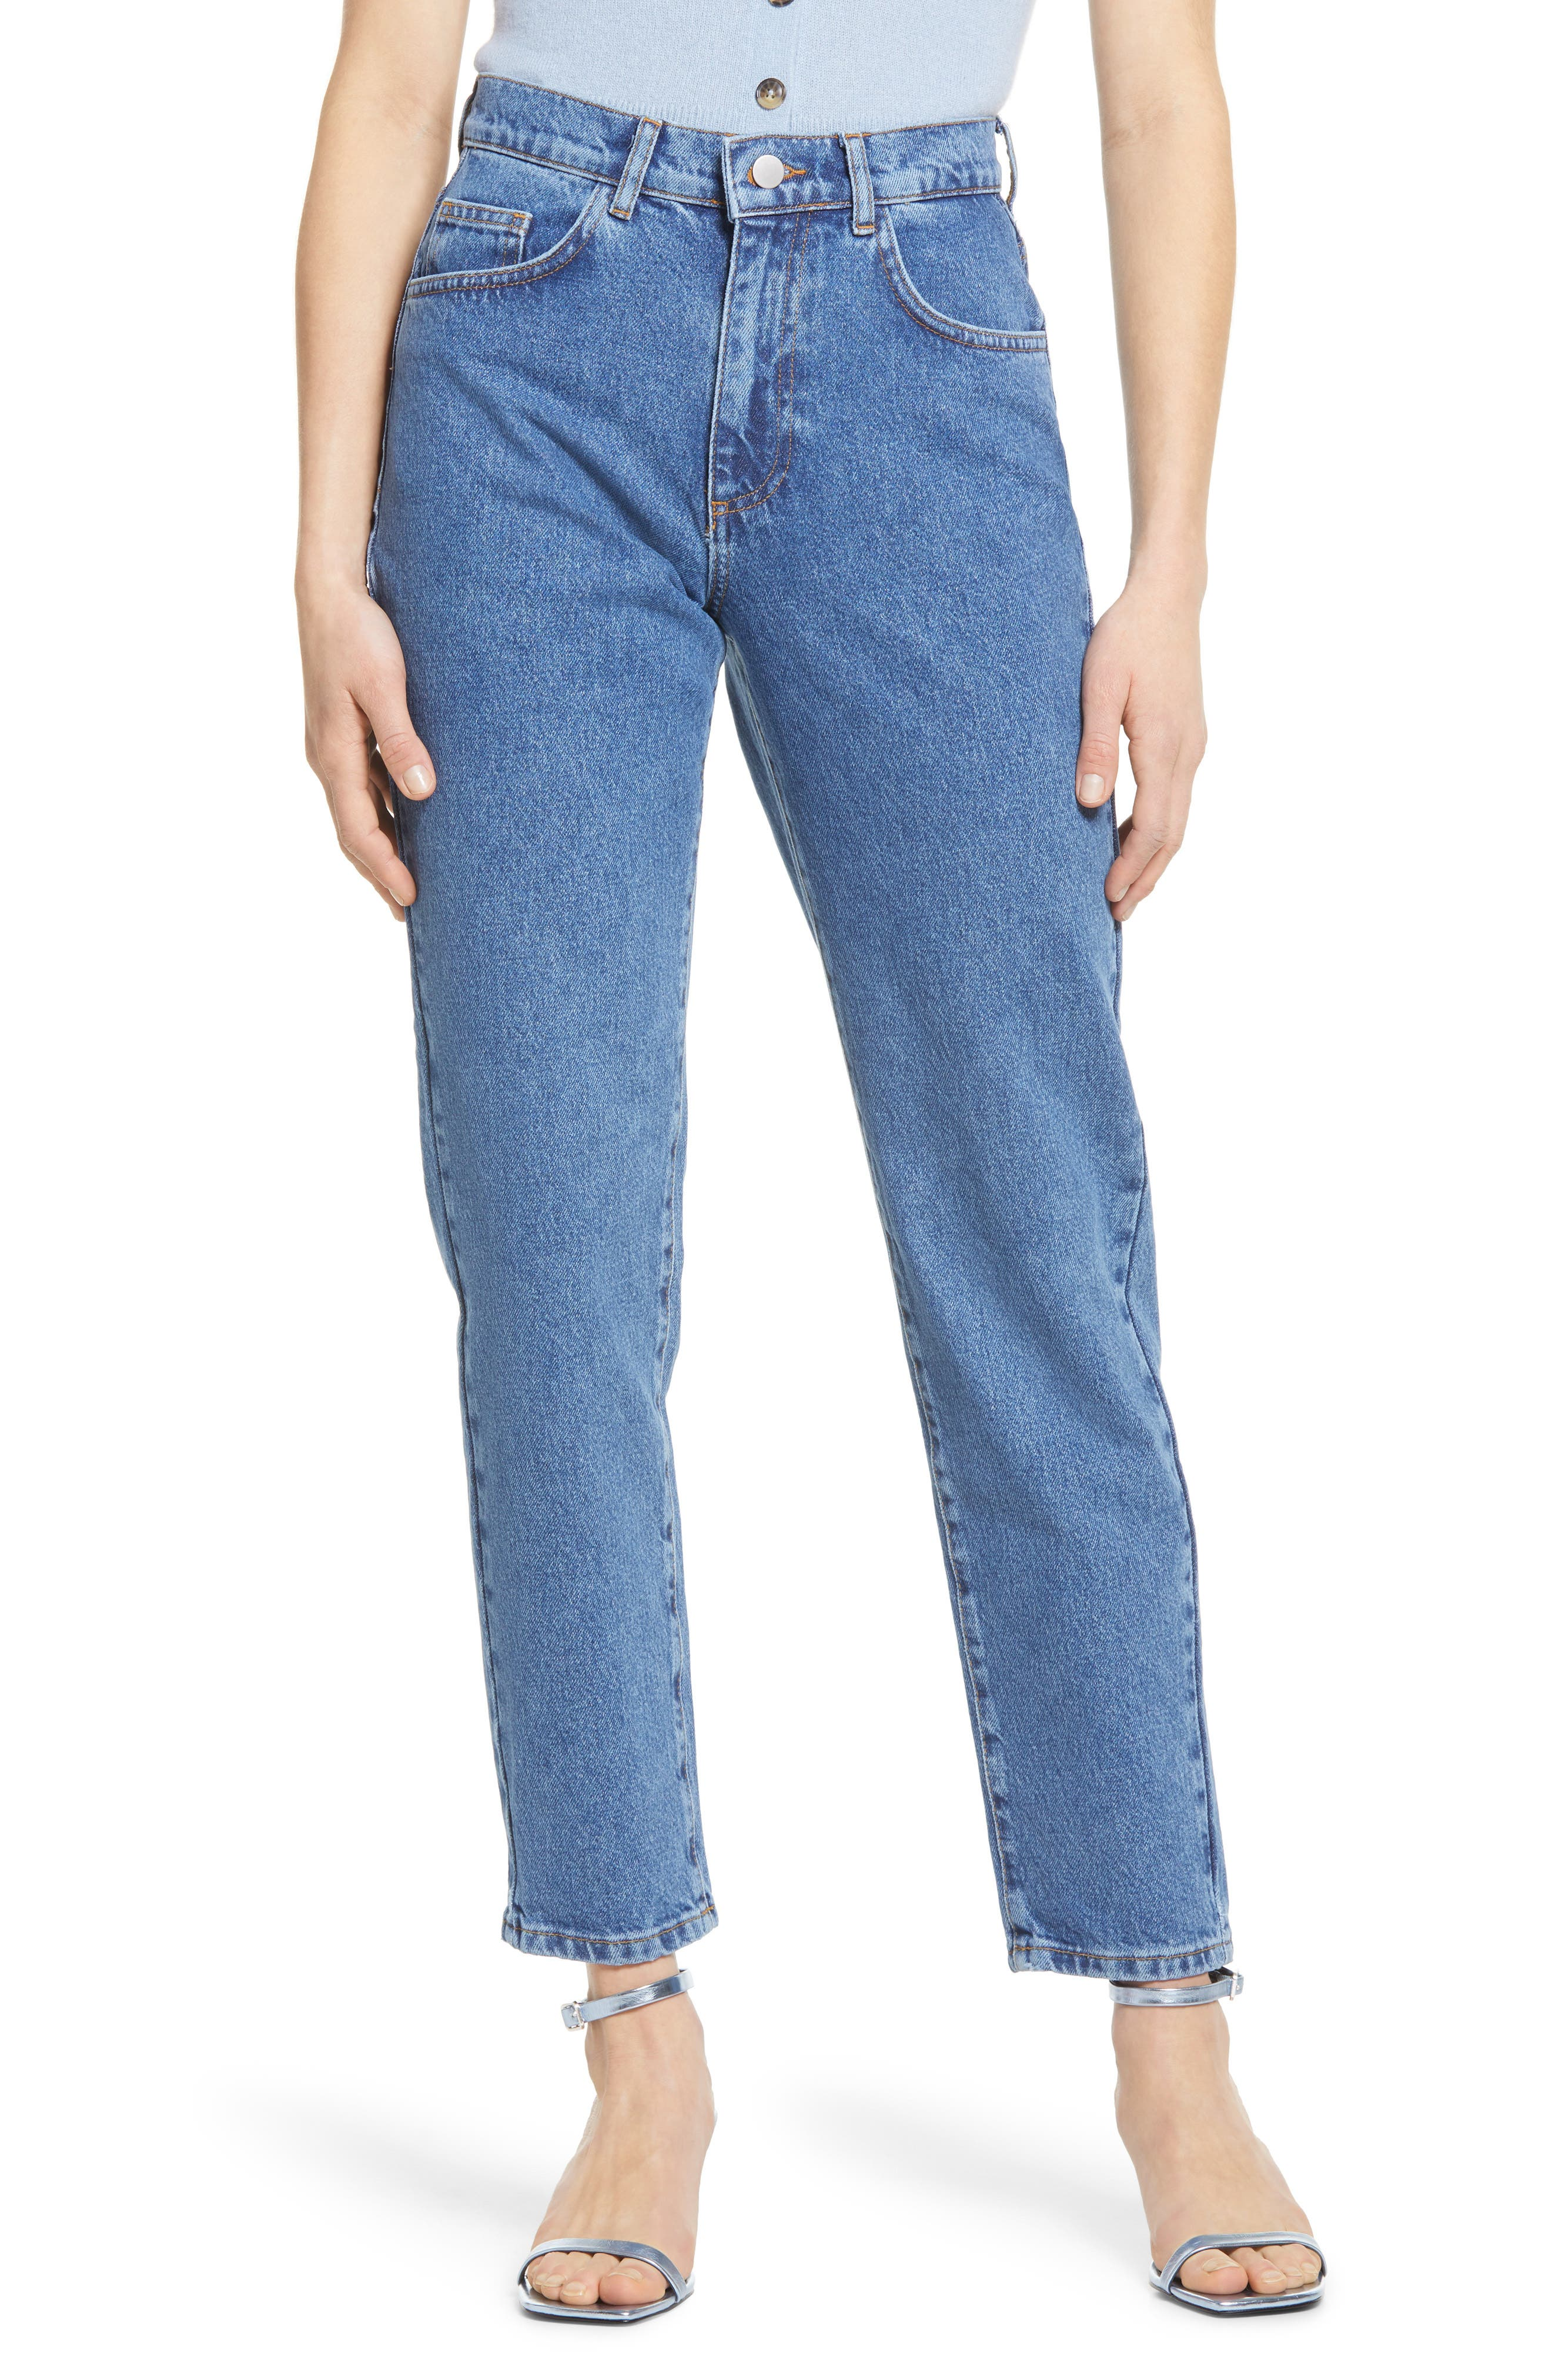 Nadine High Waist Relaxed Jeans